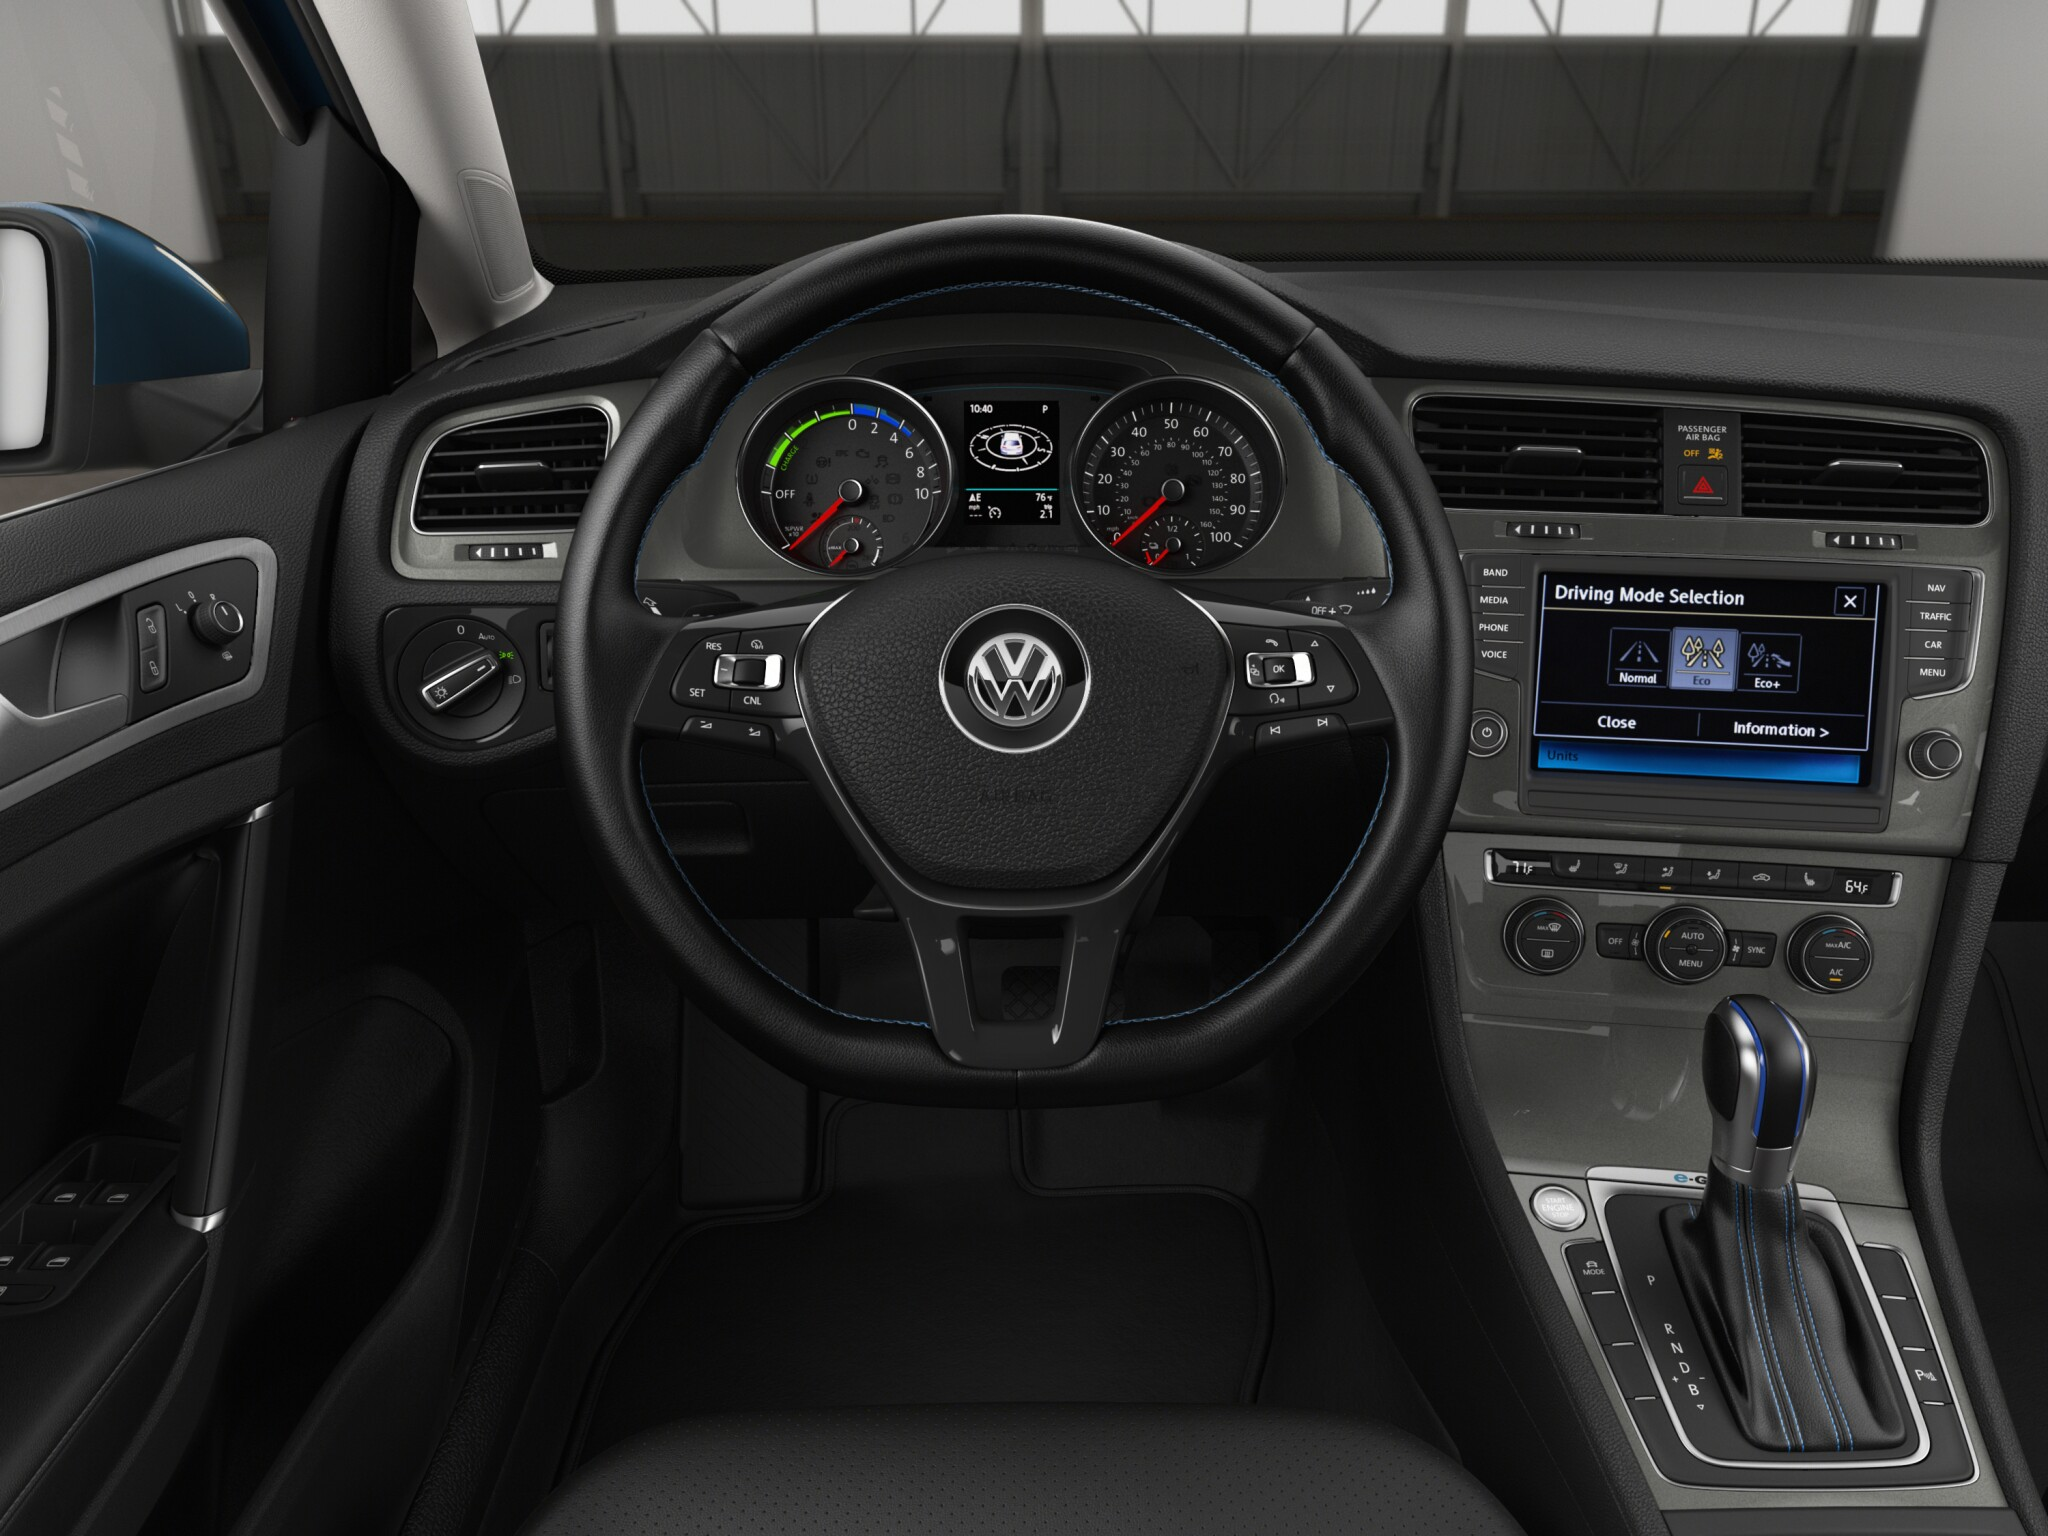 2016 Volkswagen e-Golf Cockpit and Speedometer